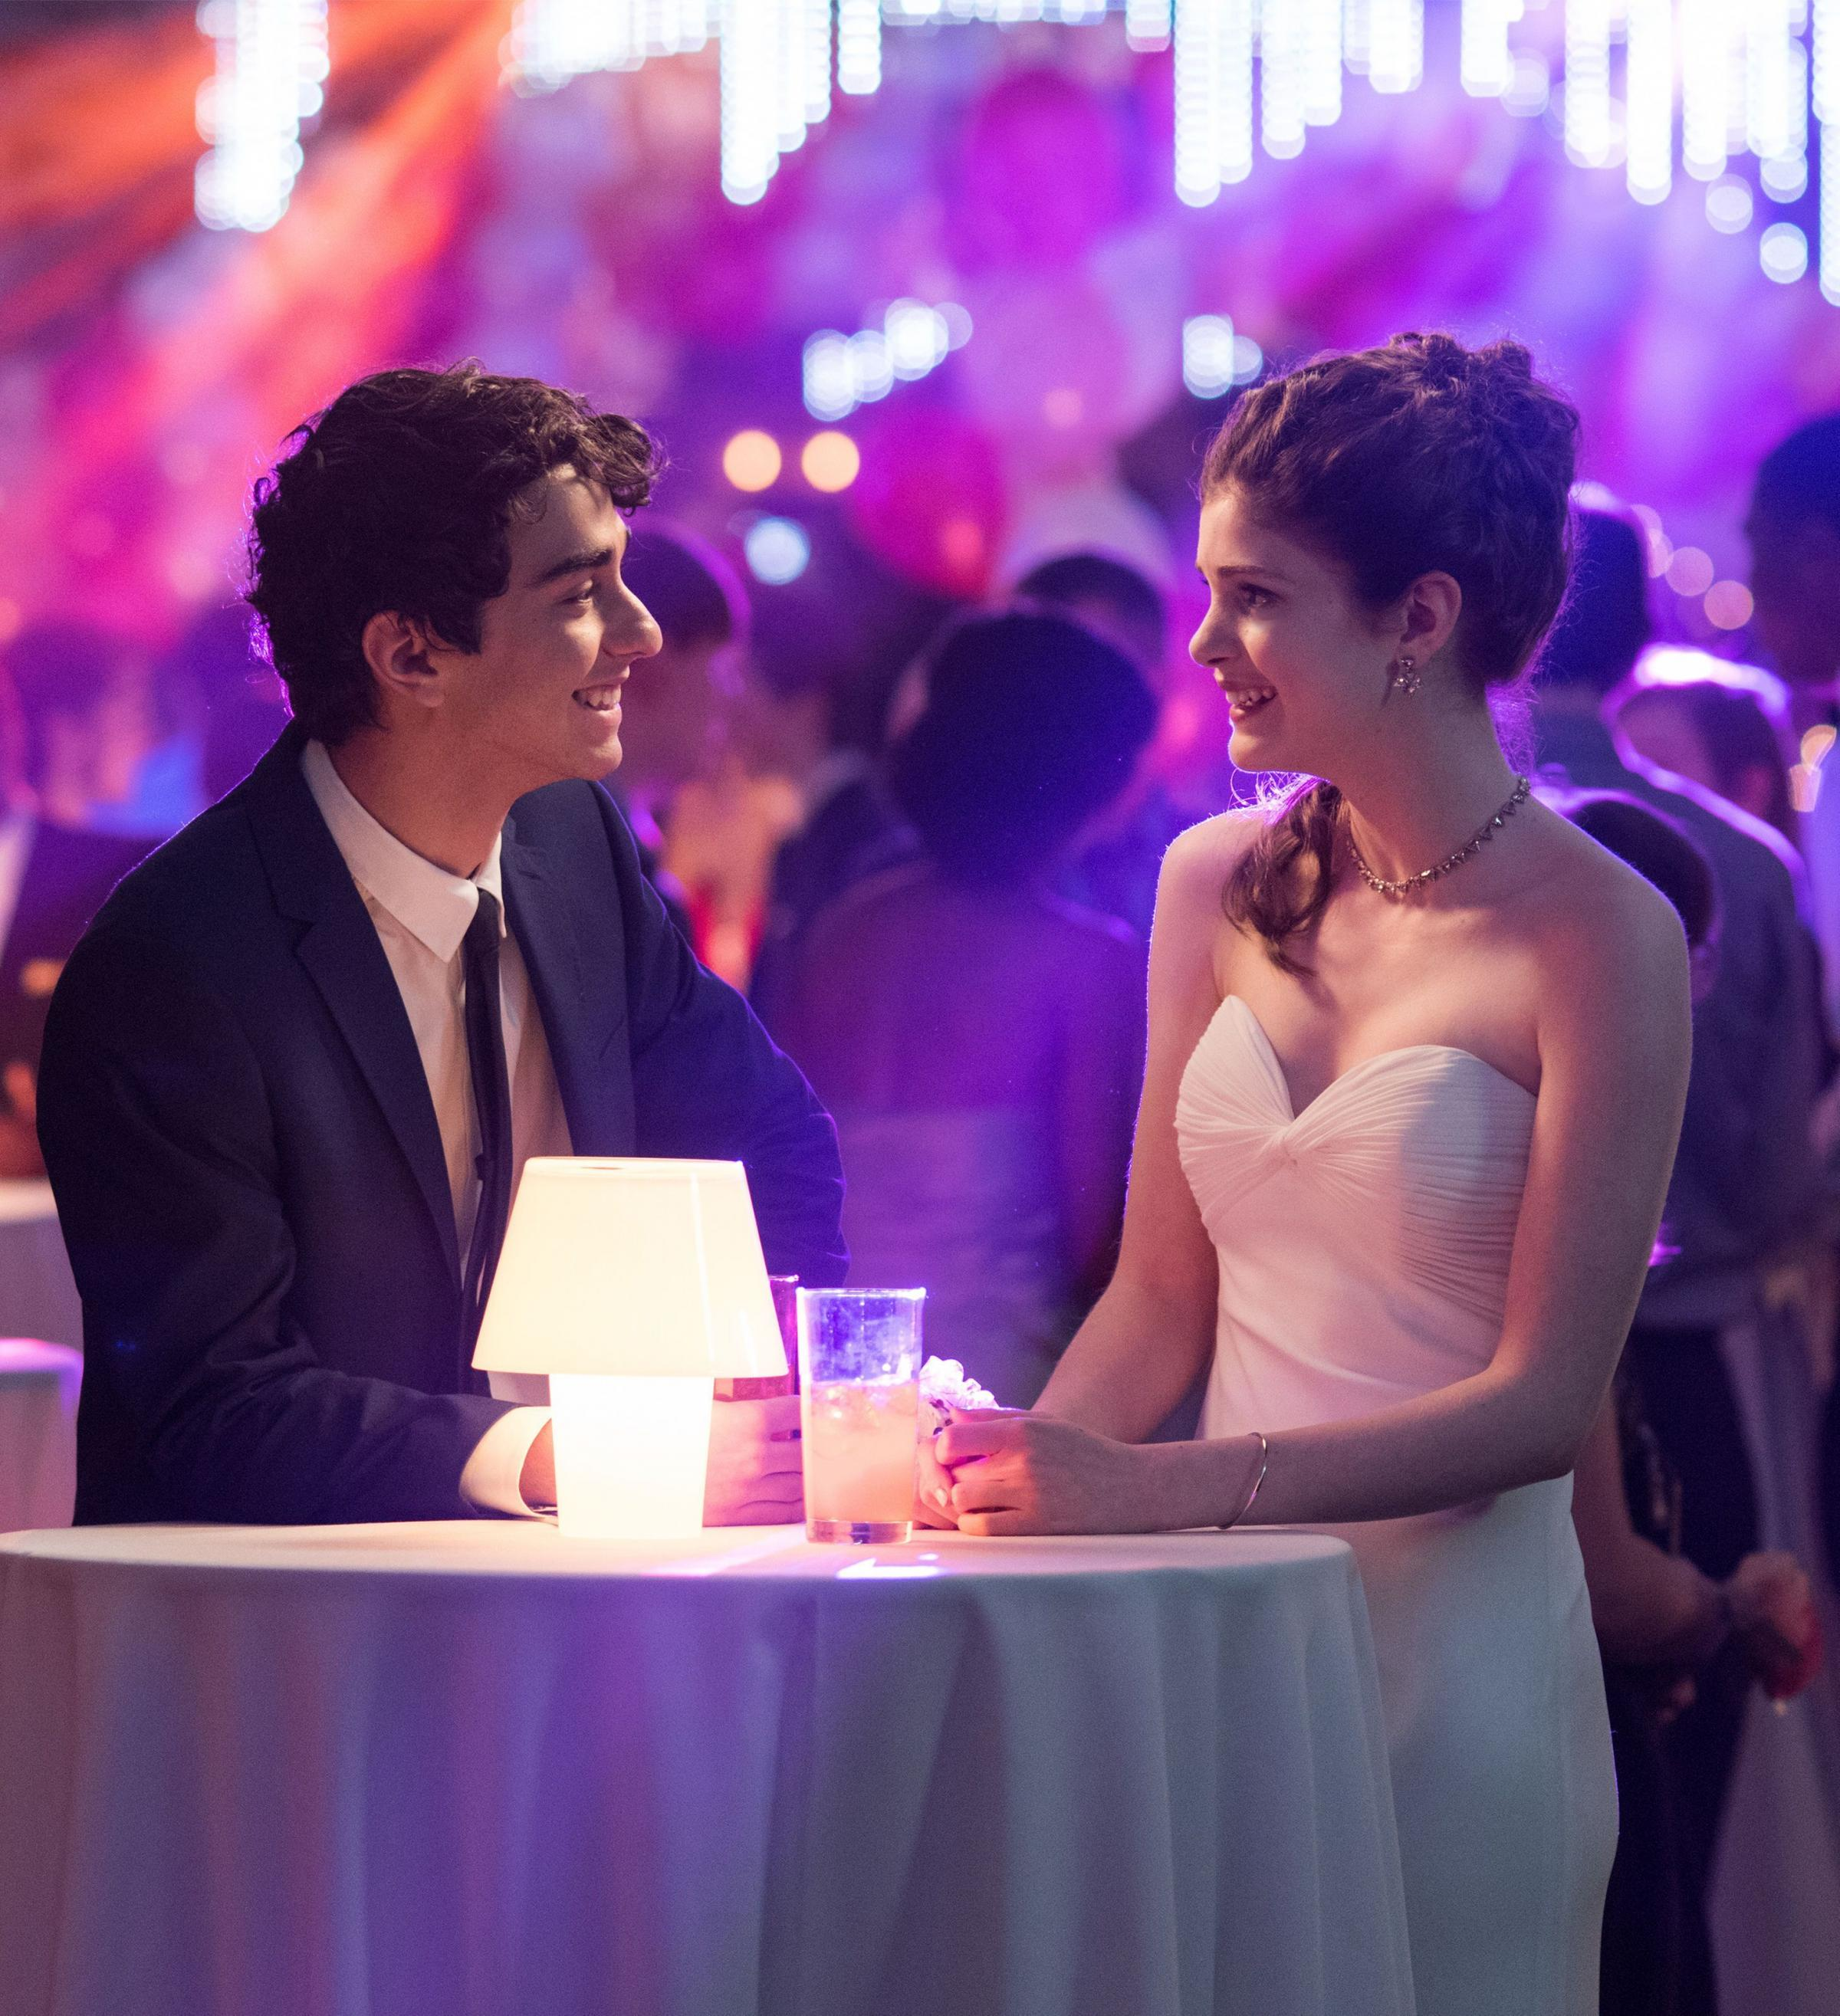 Love is in the air - Alex Wolff and Elena Kampouris. (PA Photo/Universal Pictures)